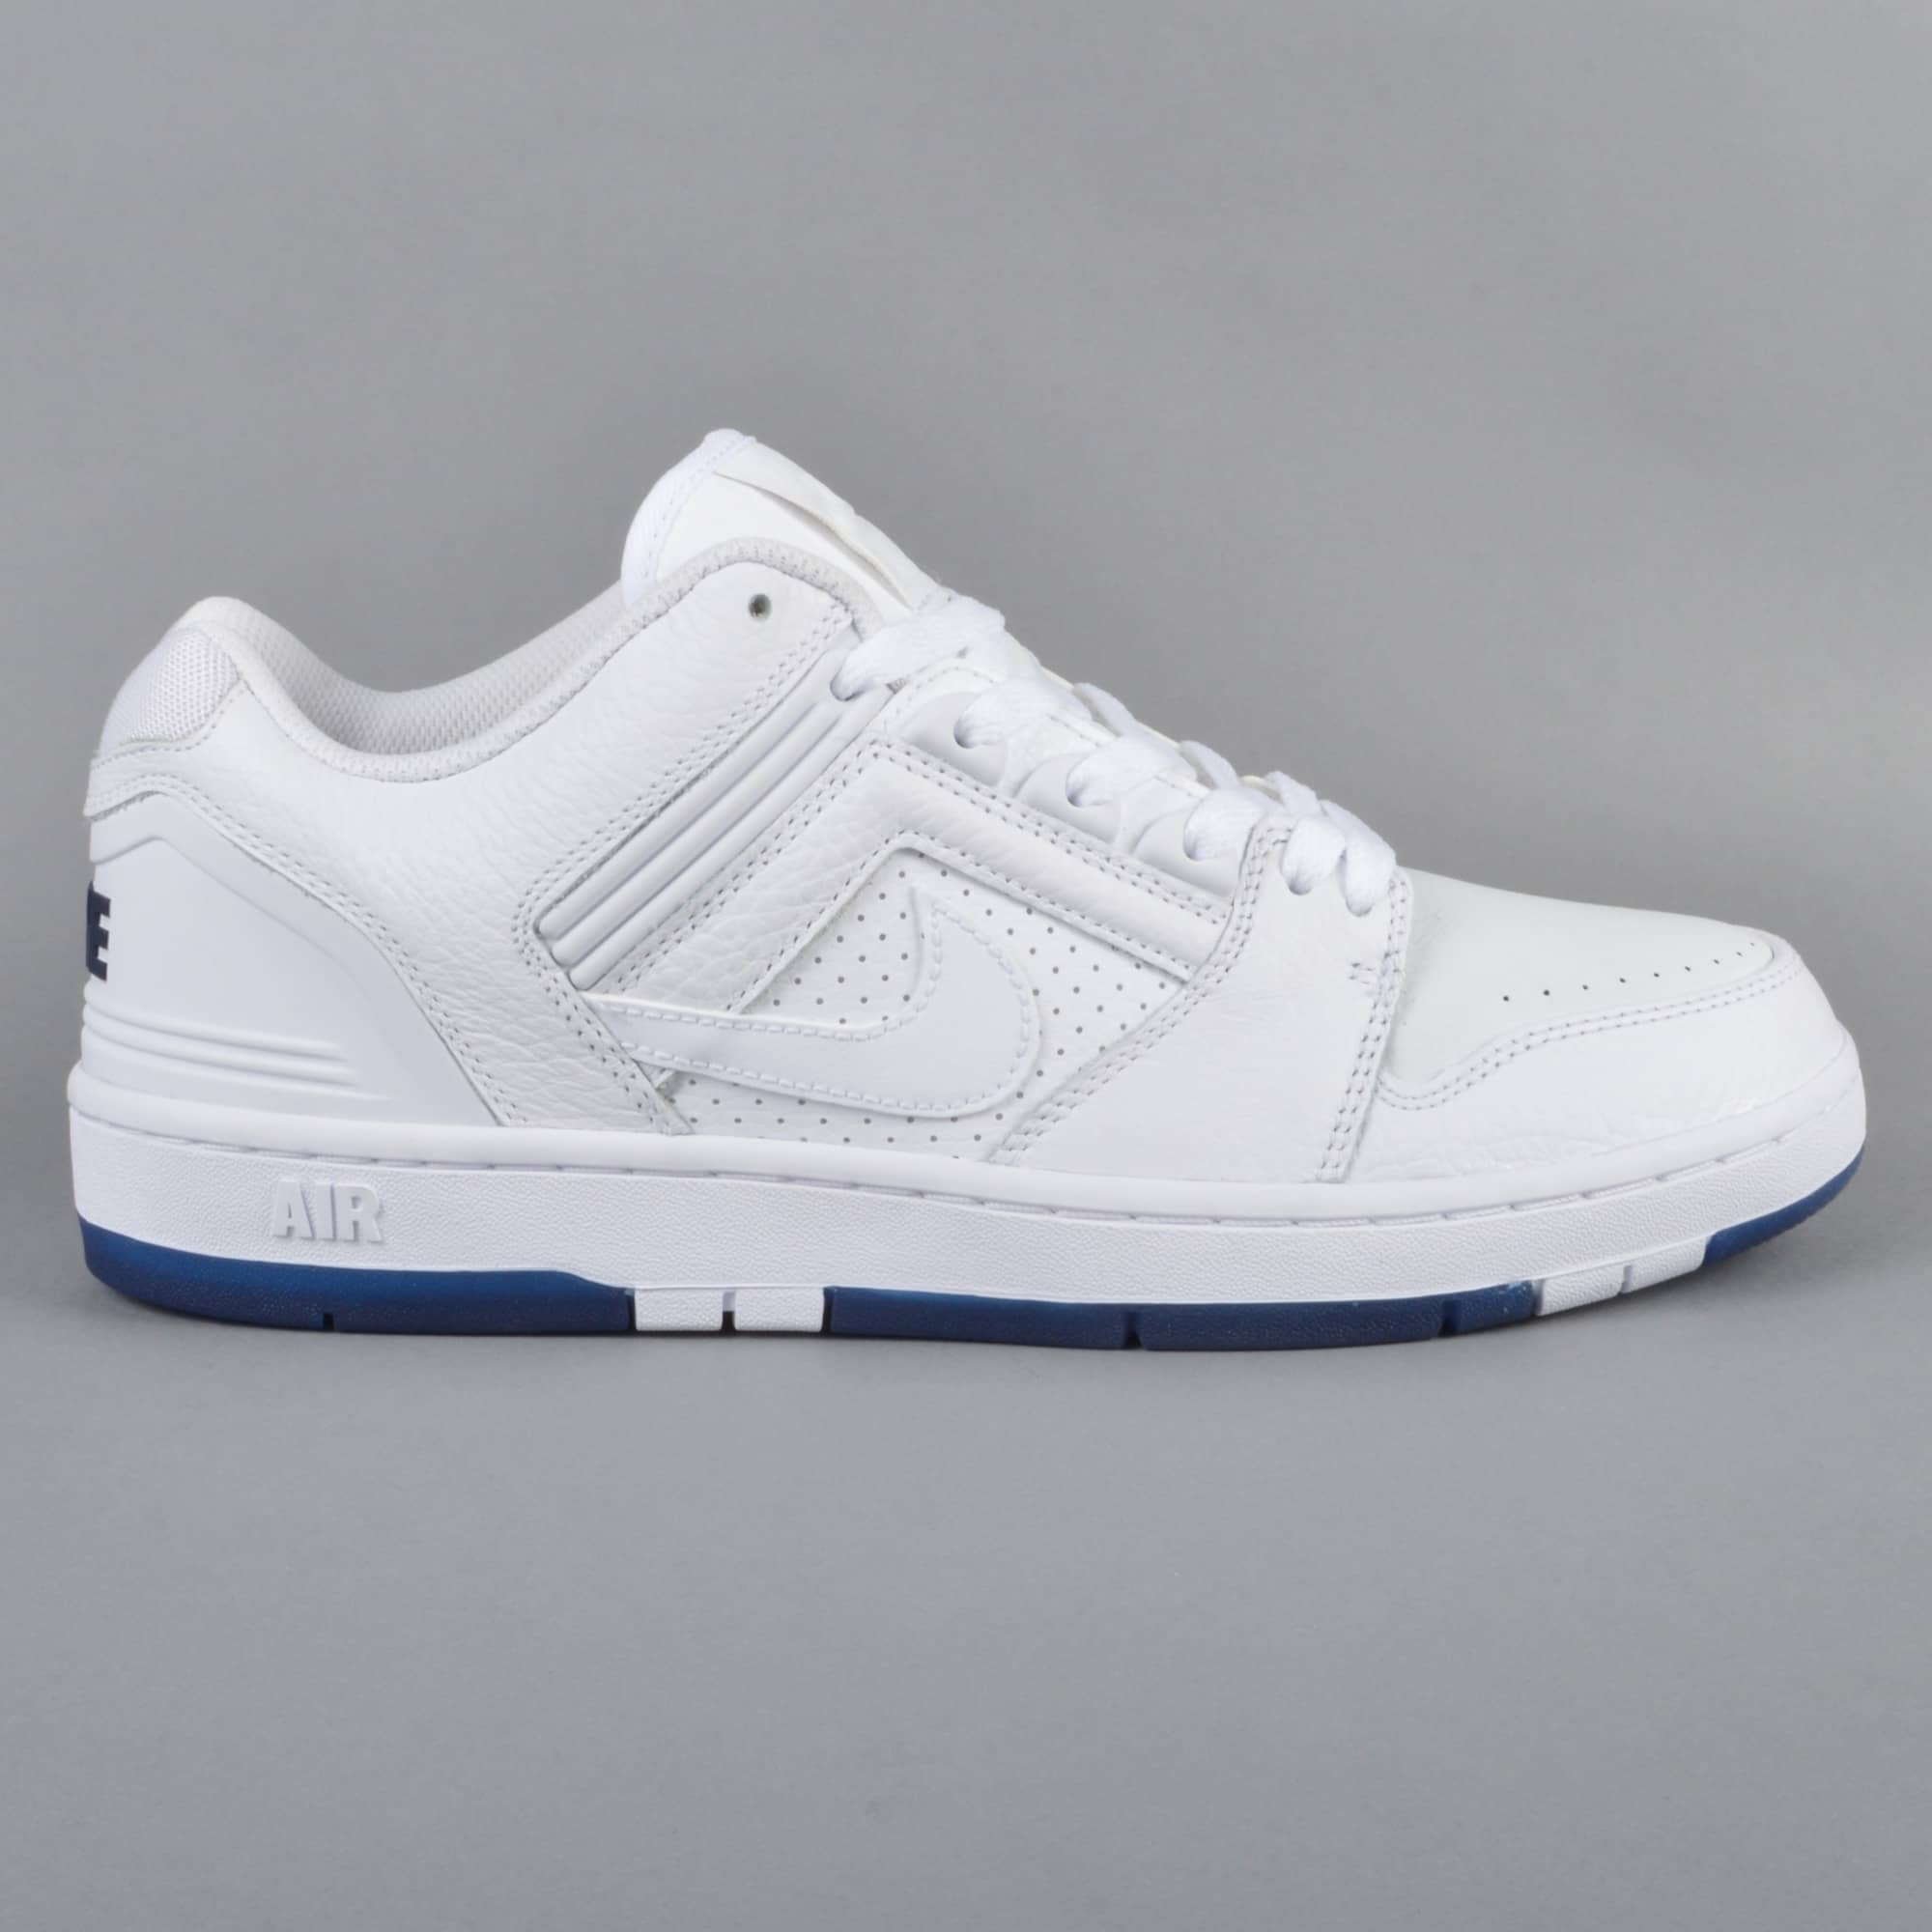 Nike SB Air Force 2 Low QS Skate Shoes WhiteWhite Blue Void